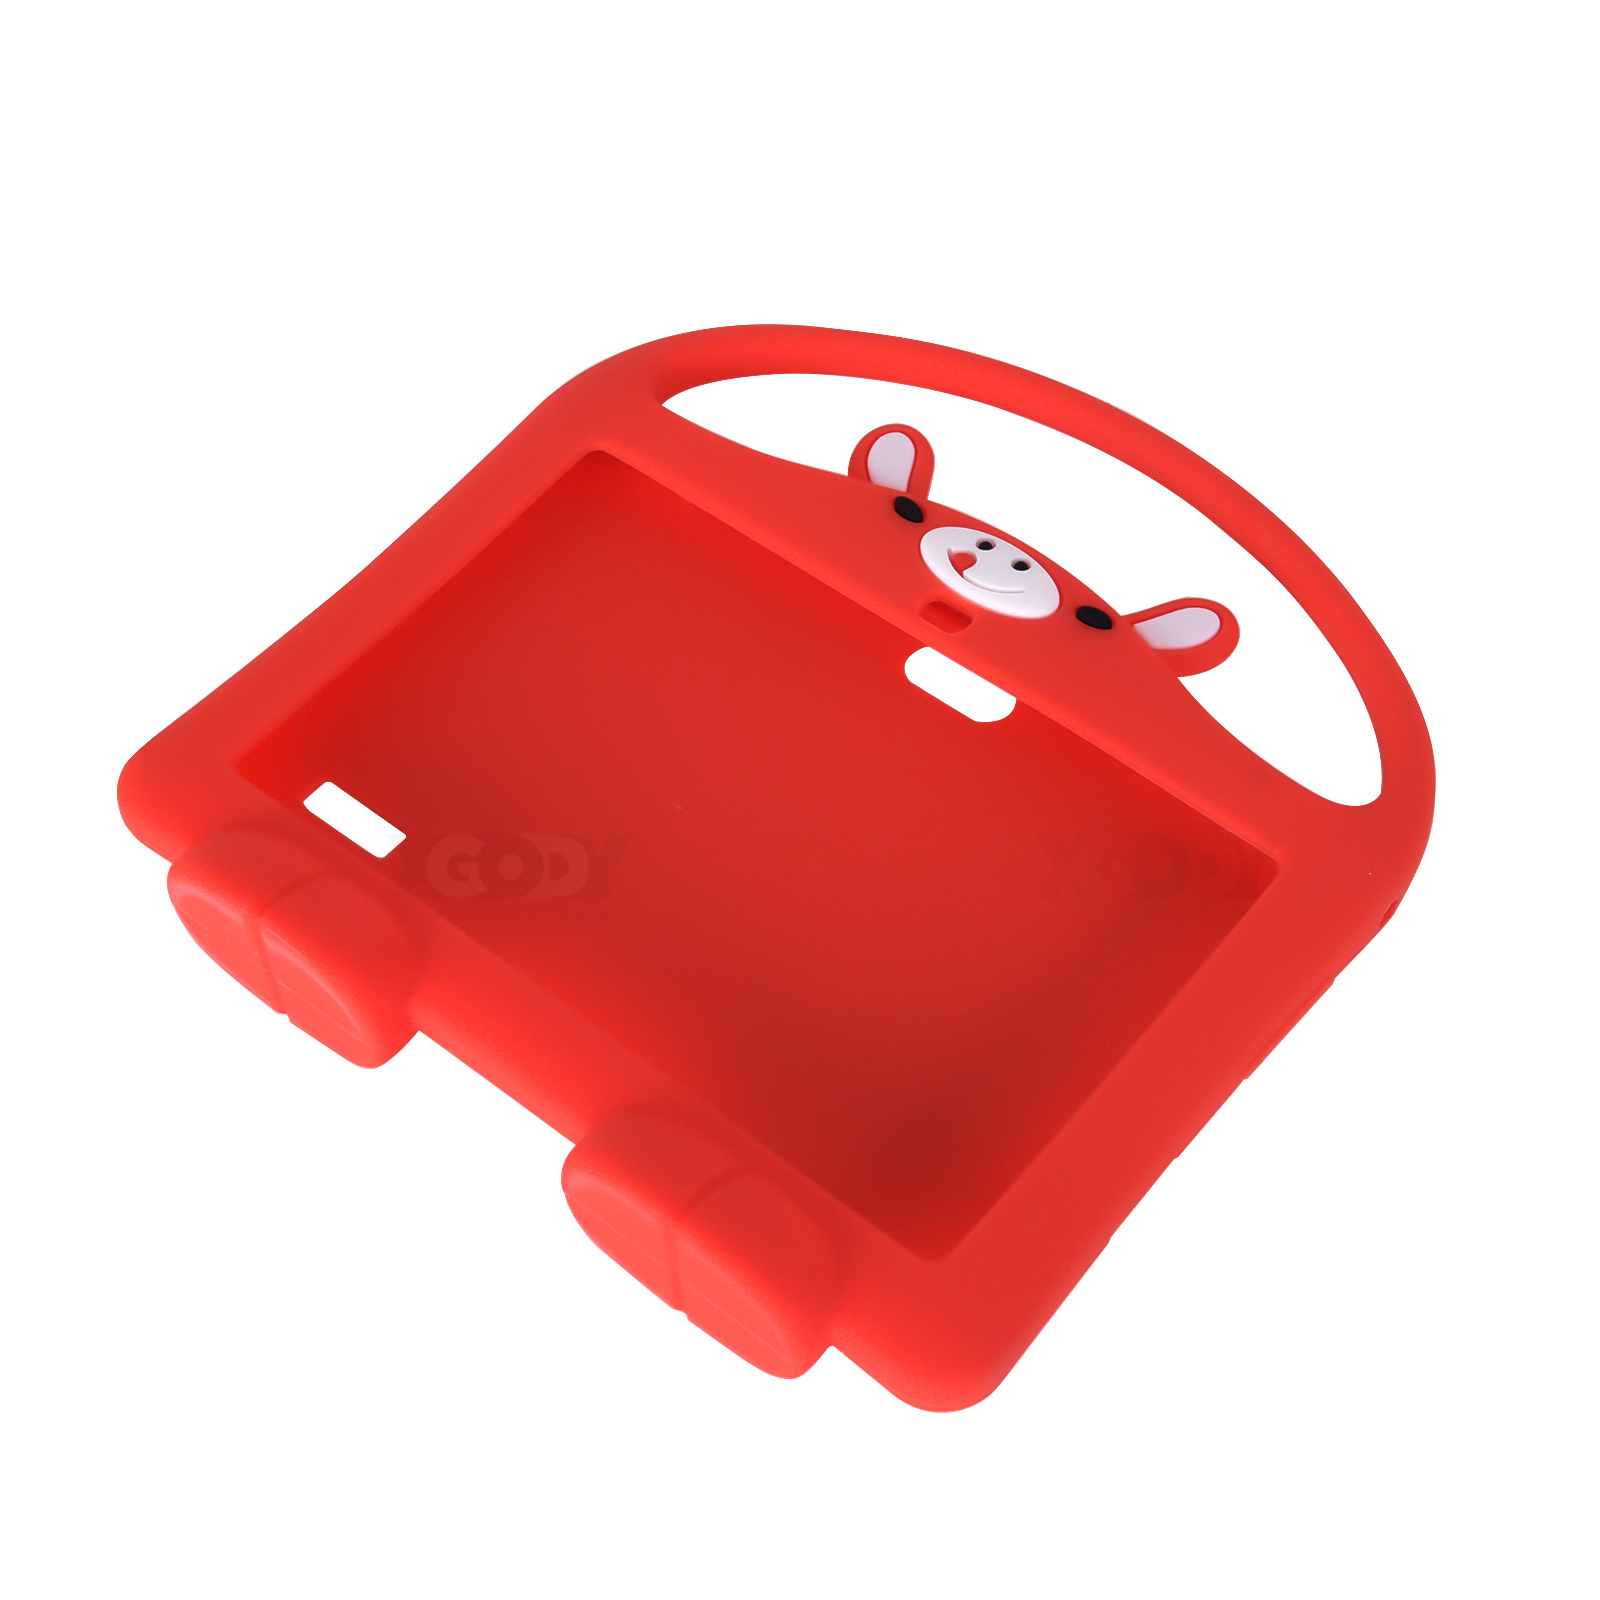 miniature 18 - Silicone Case Cover For 7 inch Android Tablet Waterproof Shockproof high quality